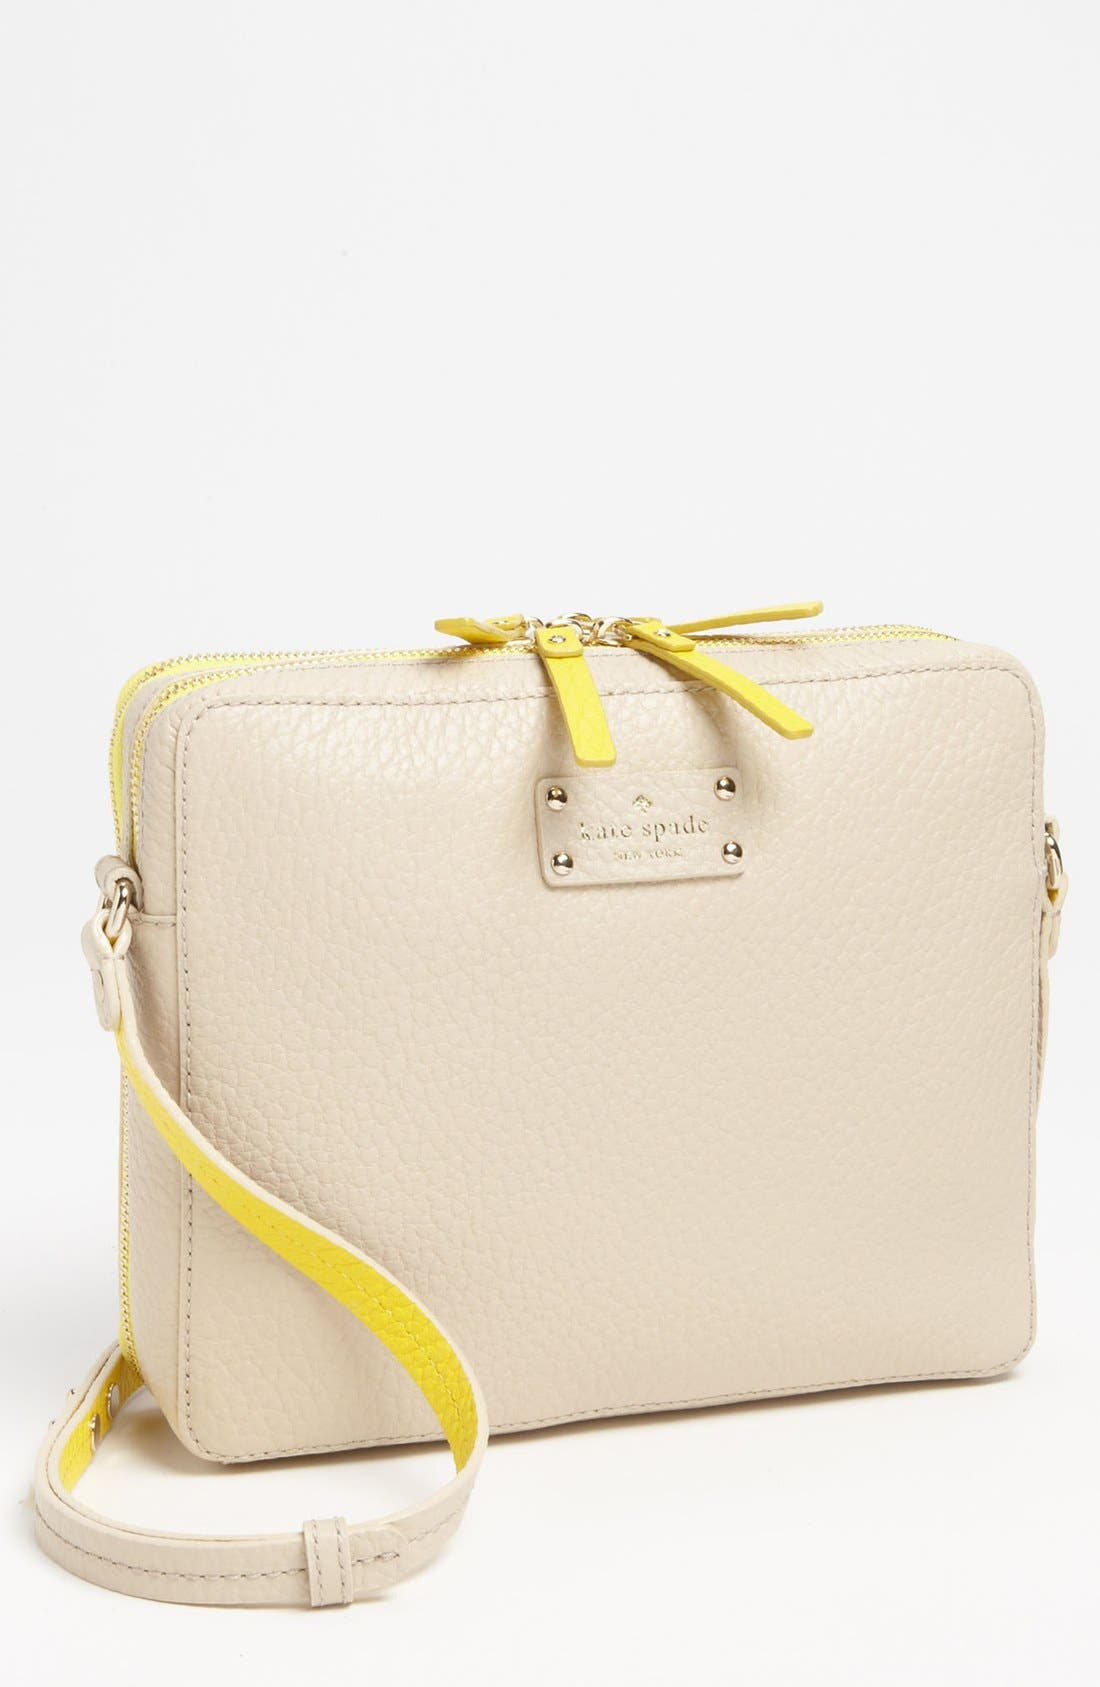 Main Image - kate spade new york 'grove court - jordan' crossbody bag with iPad case